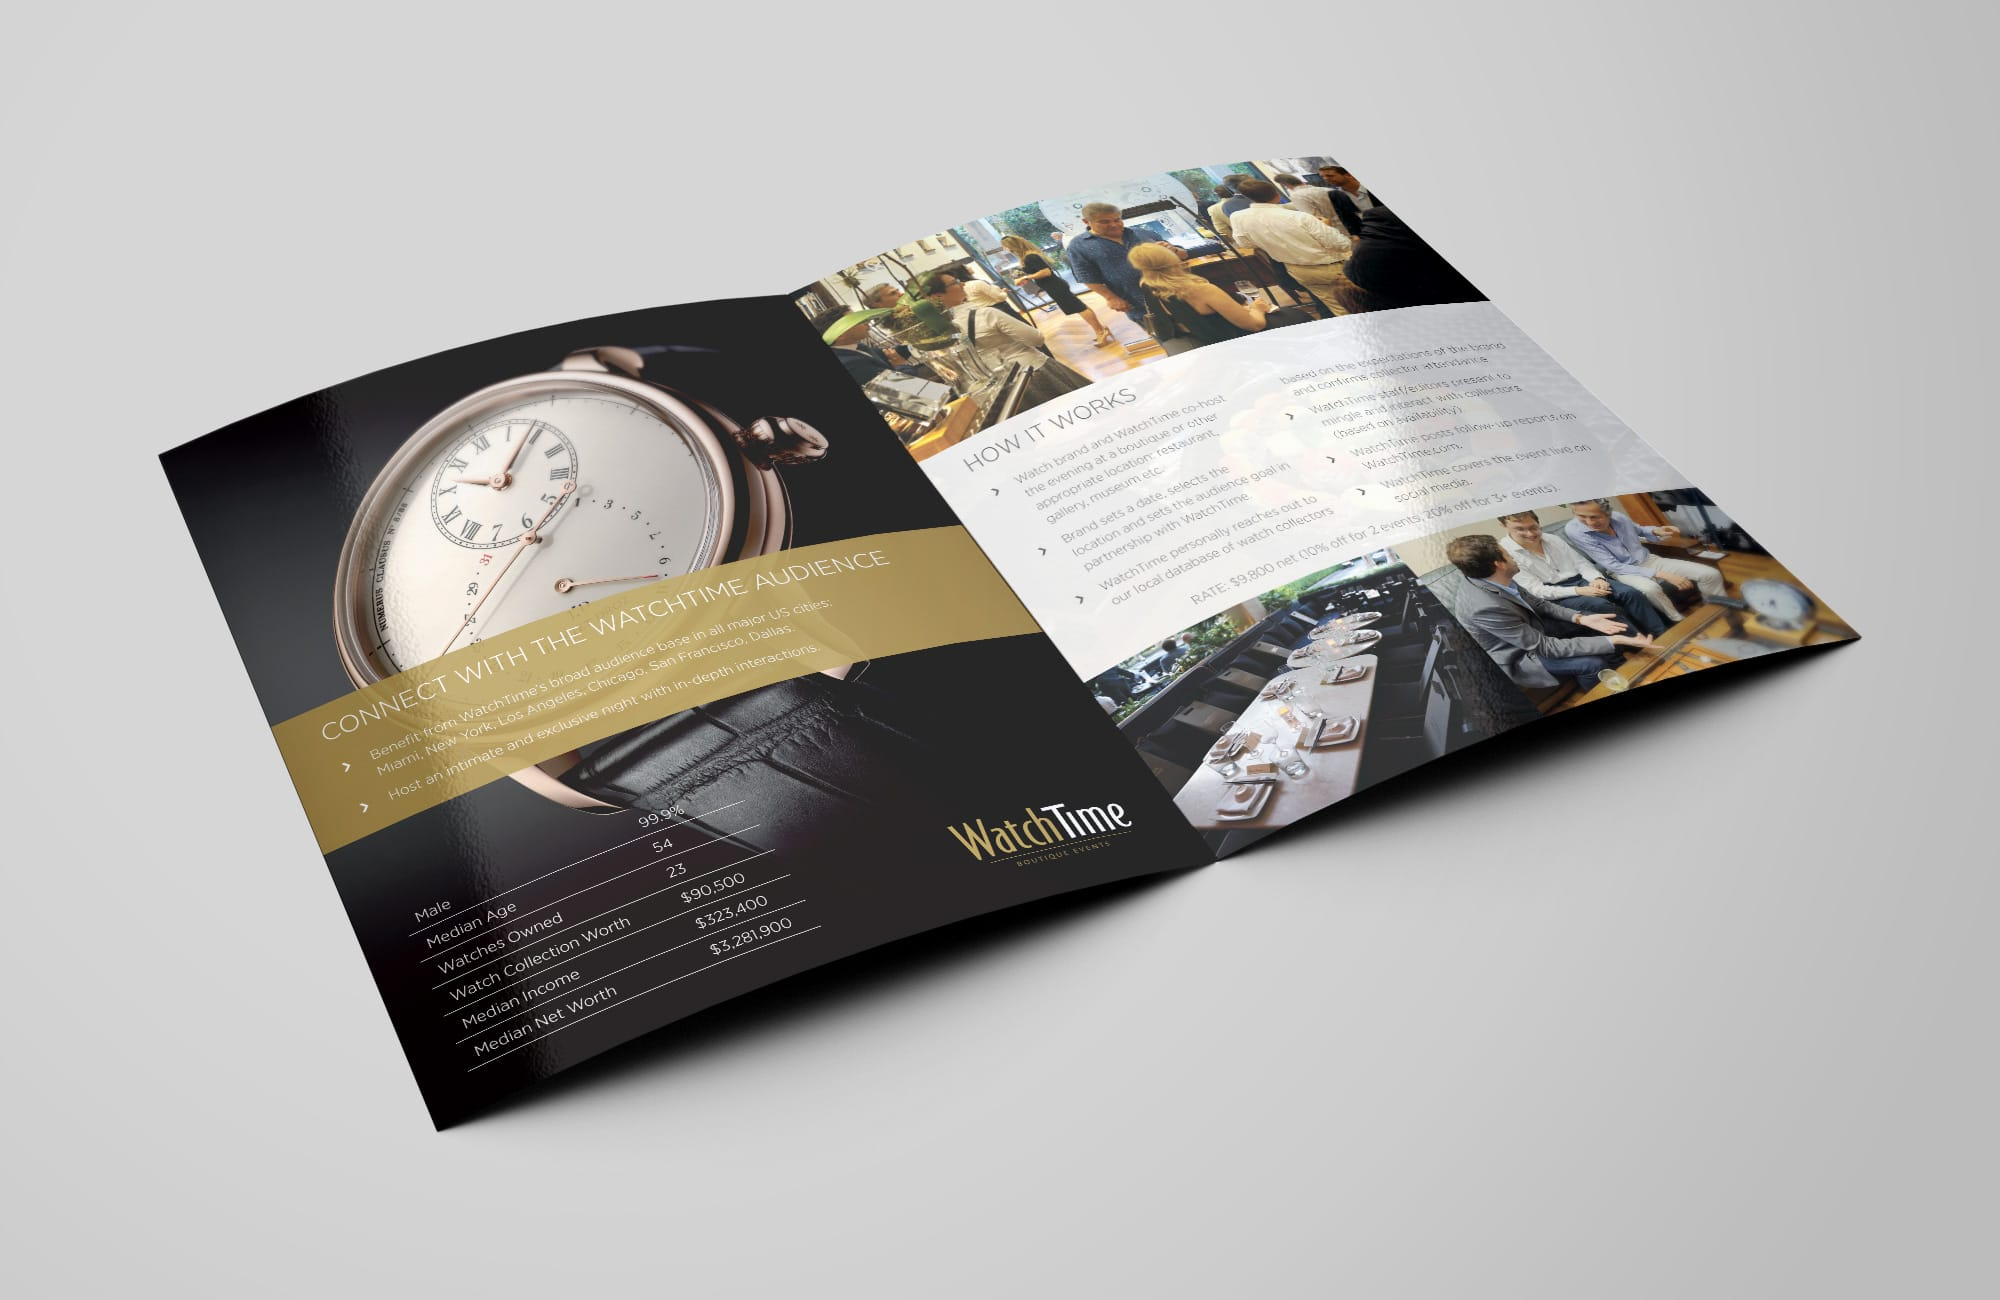 WatchTime-boutique-brochure-in